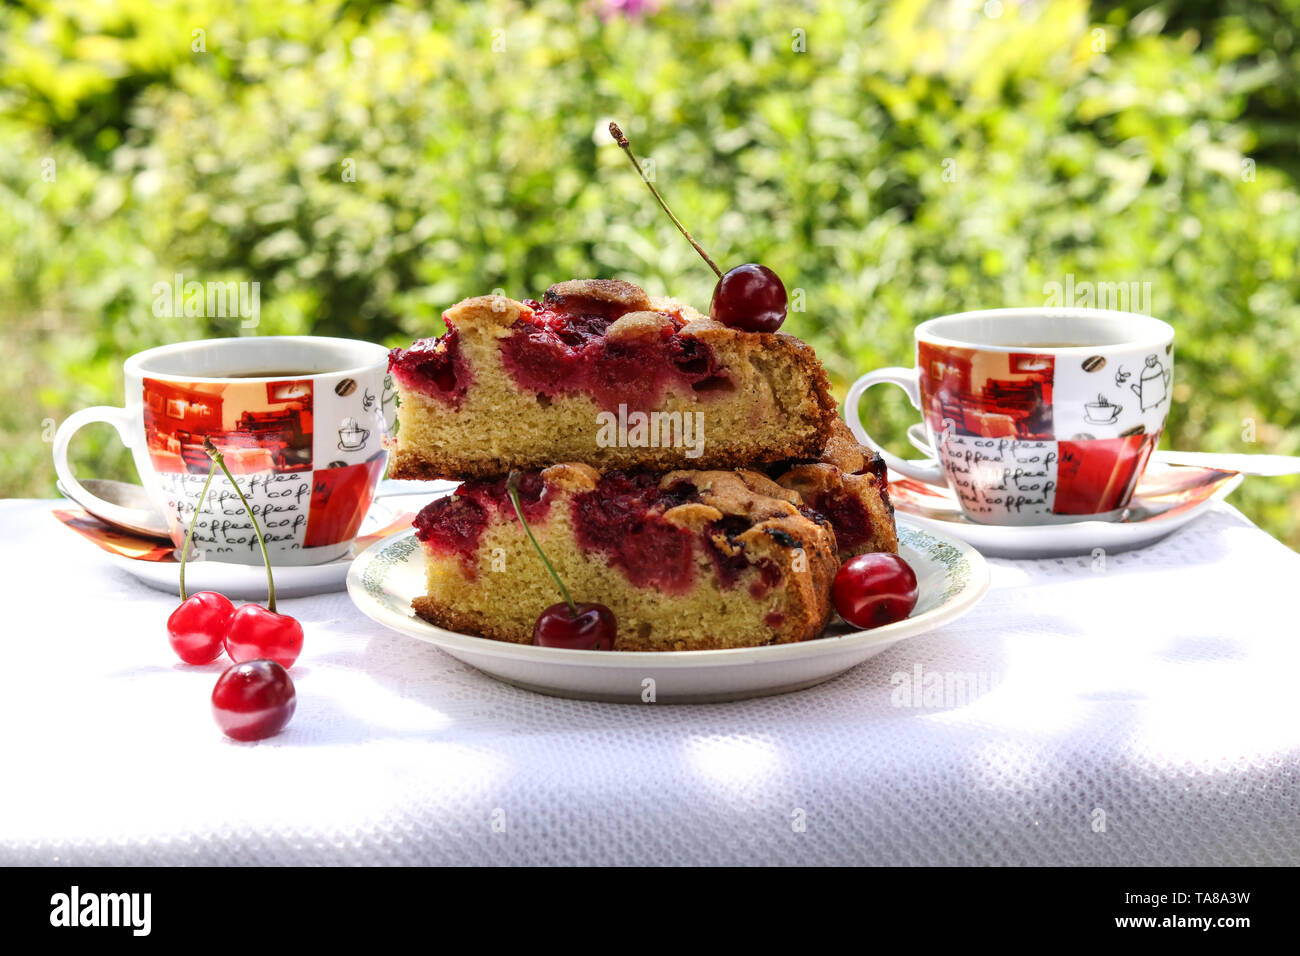 Pieces of a pie with a cherry and two cups of coffee on a table outdoors - Stock Image